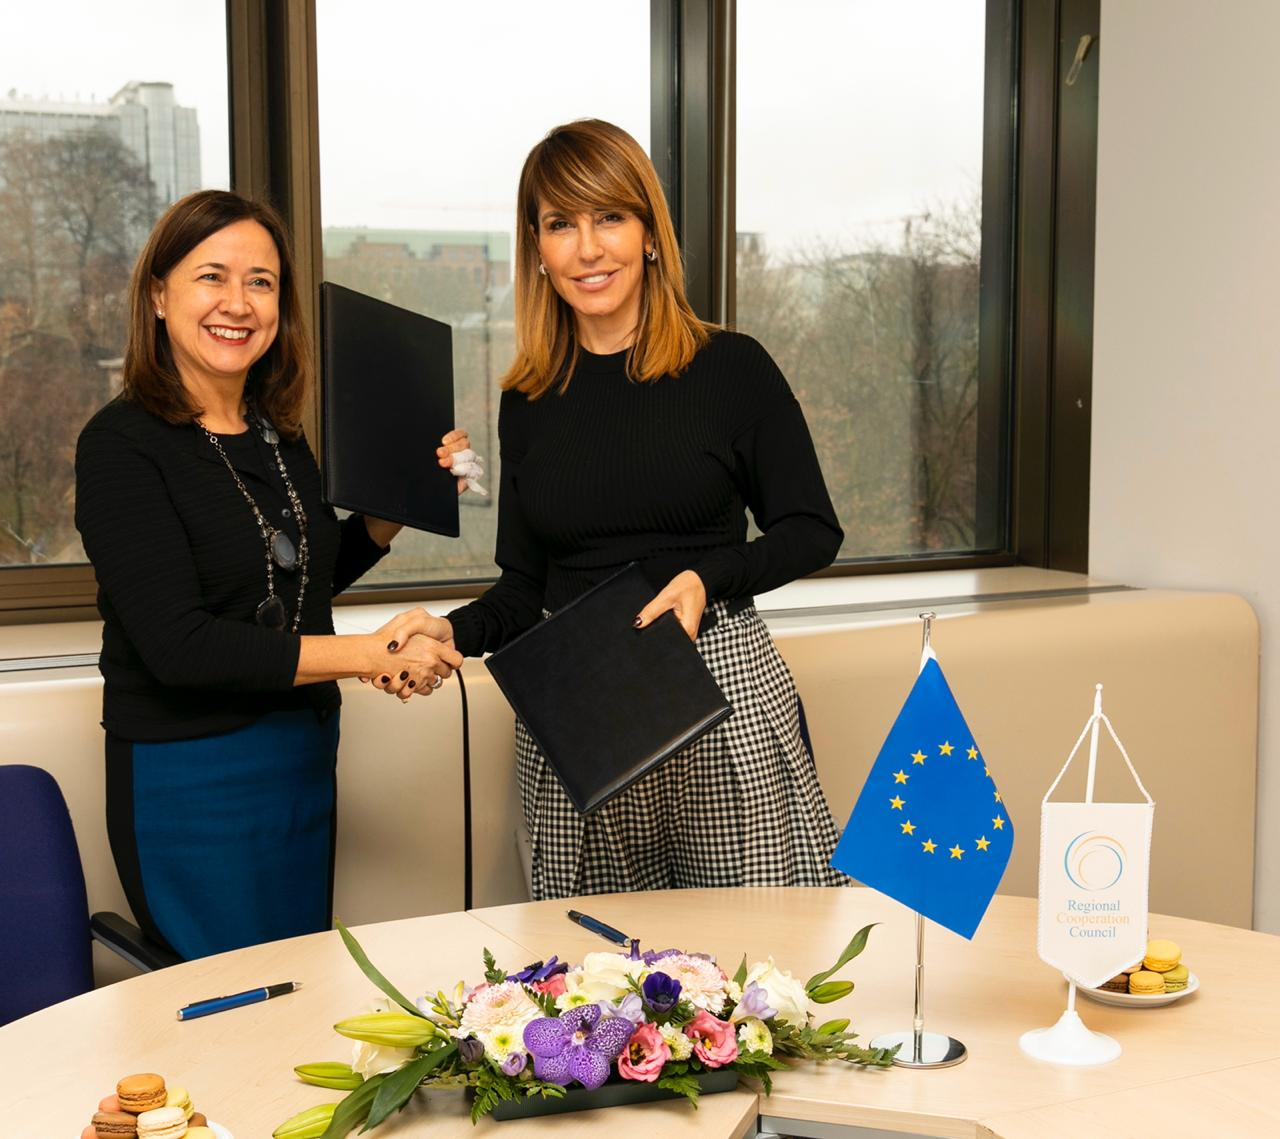 Majlinda Bregu, Secretary General of the RCC (right) and Genoveva Ruiz Calavera, Director for the Western Balkans at the European Commissions' DG NEAR sign 3-year contract on the EC support to regional cooperation in the Western Balkans in Brussels, 11 December 2019 (Photo; RCC/Laure Geerts)